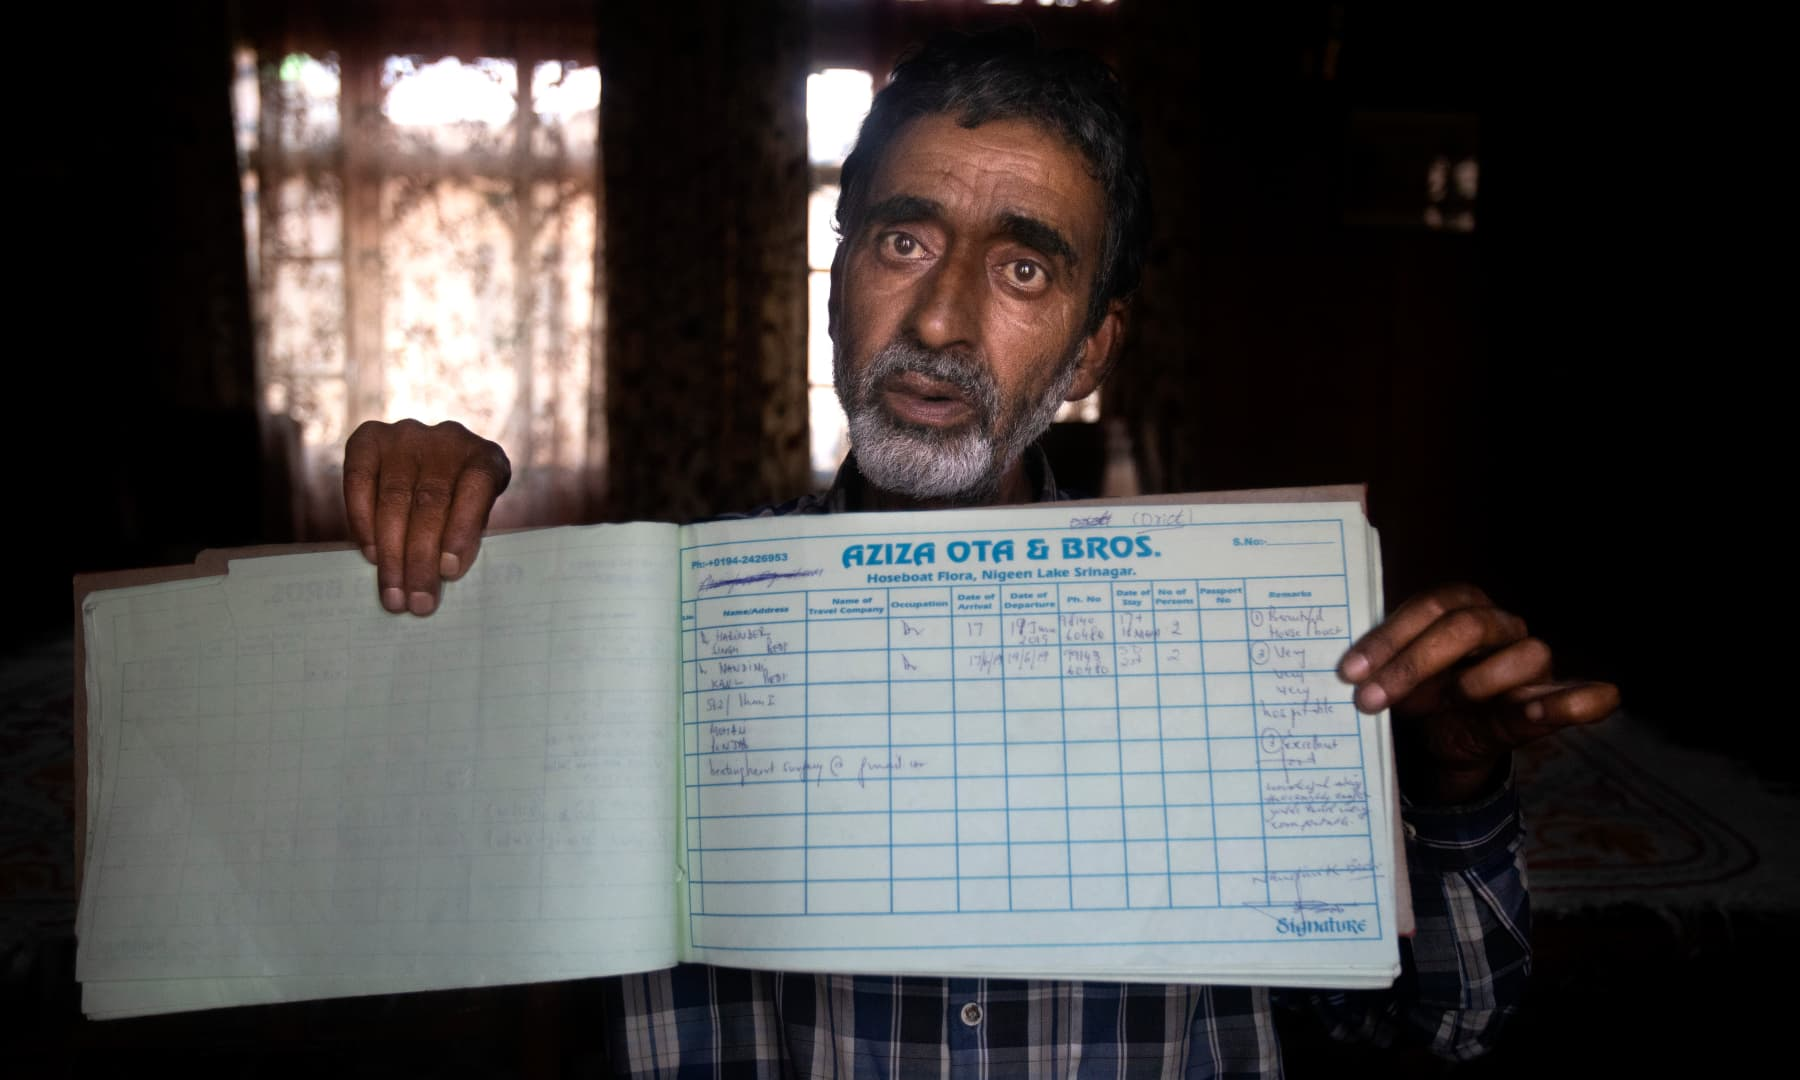 A Kashmiri houseboat owner Ghulam Qadir shows his guest entry book which was last filled in July 2019, in Srinagar, July 28. — AP